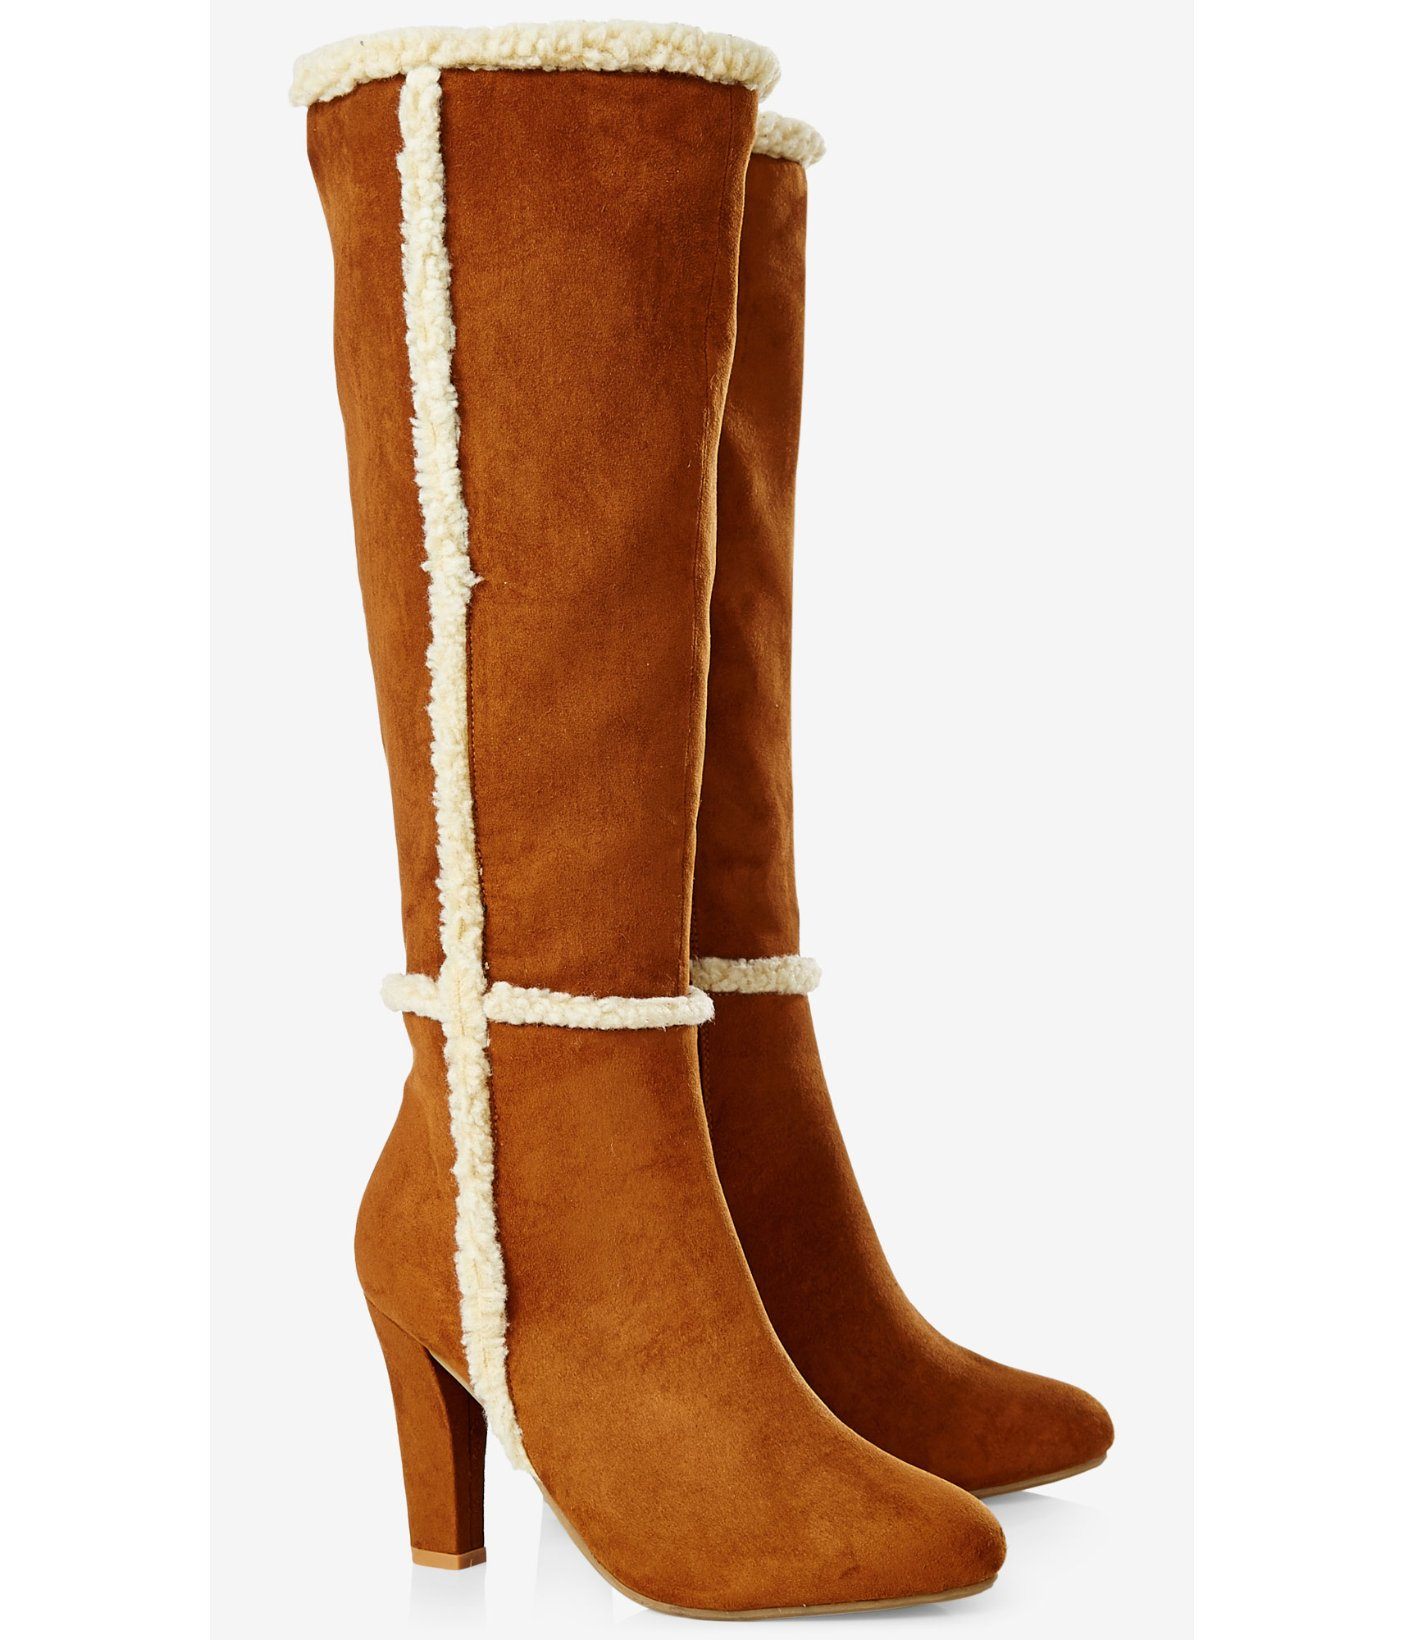 Ring In A Spicy Hot Palette Of Colors That Go With Orange: Express Tall Faux Suede Heeled Boot In Brown